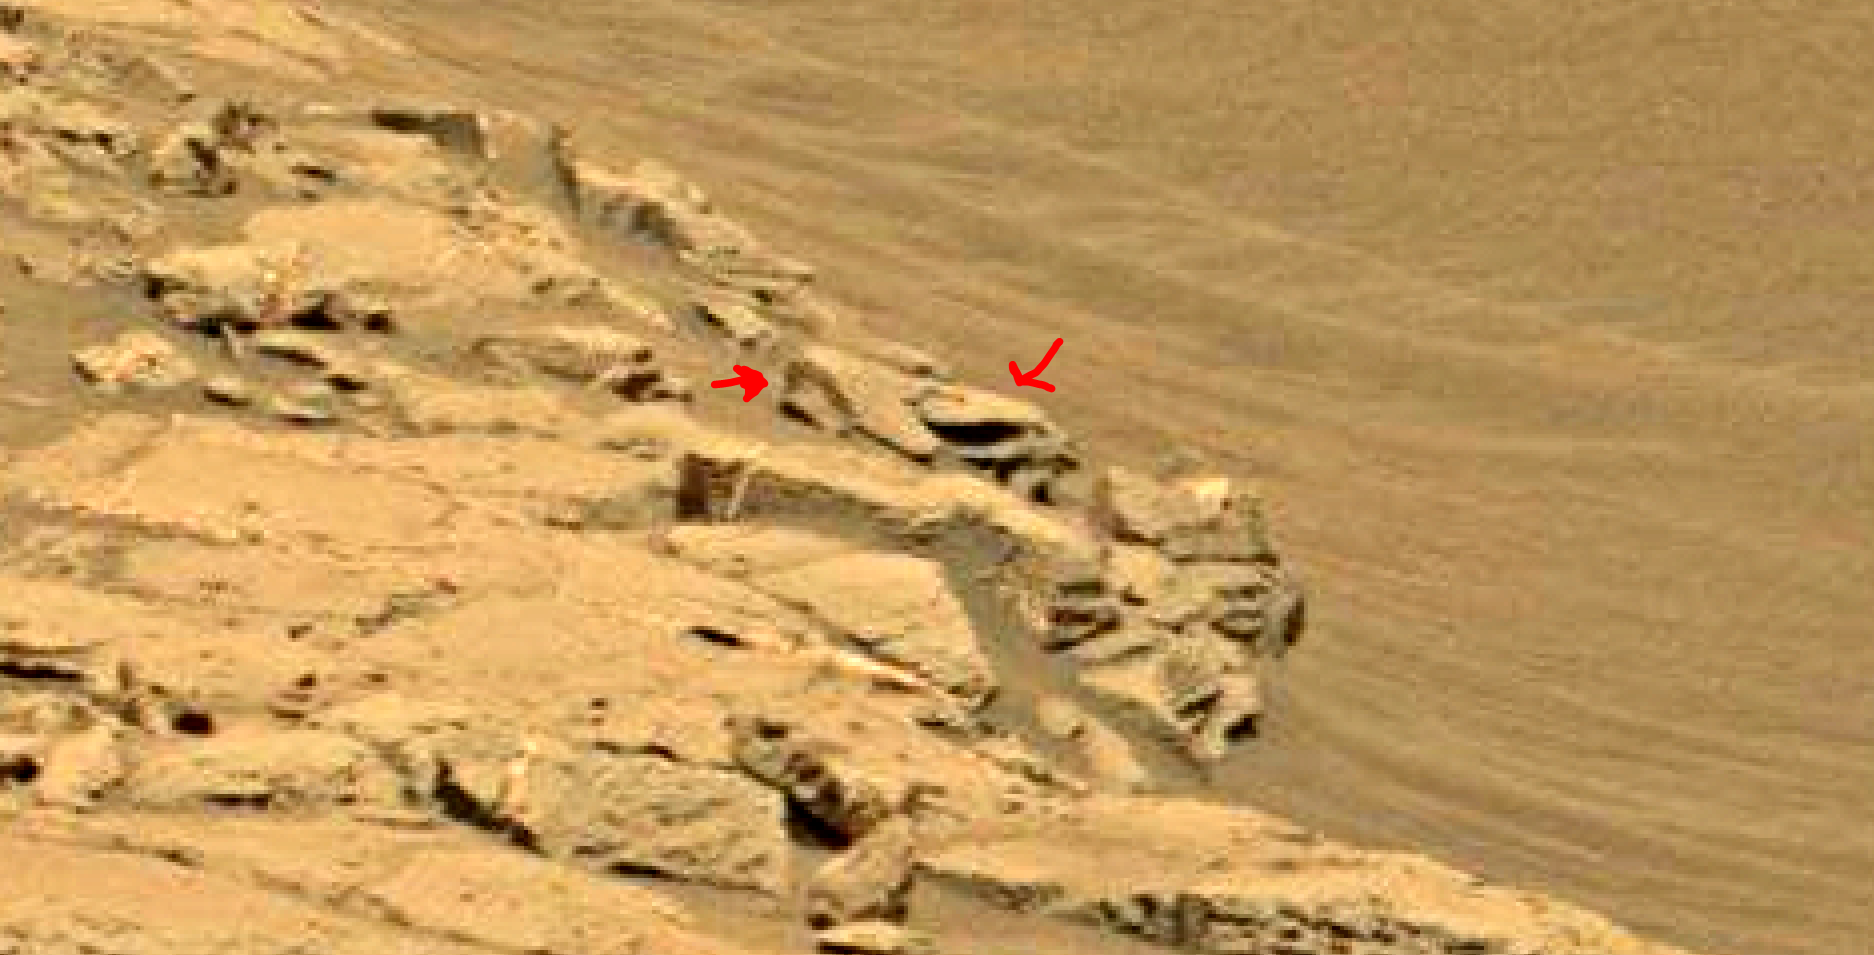 mars sol 1353 anomaly-artifacts 27 was life on mars